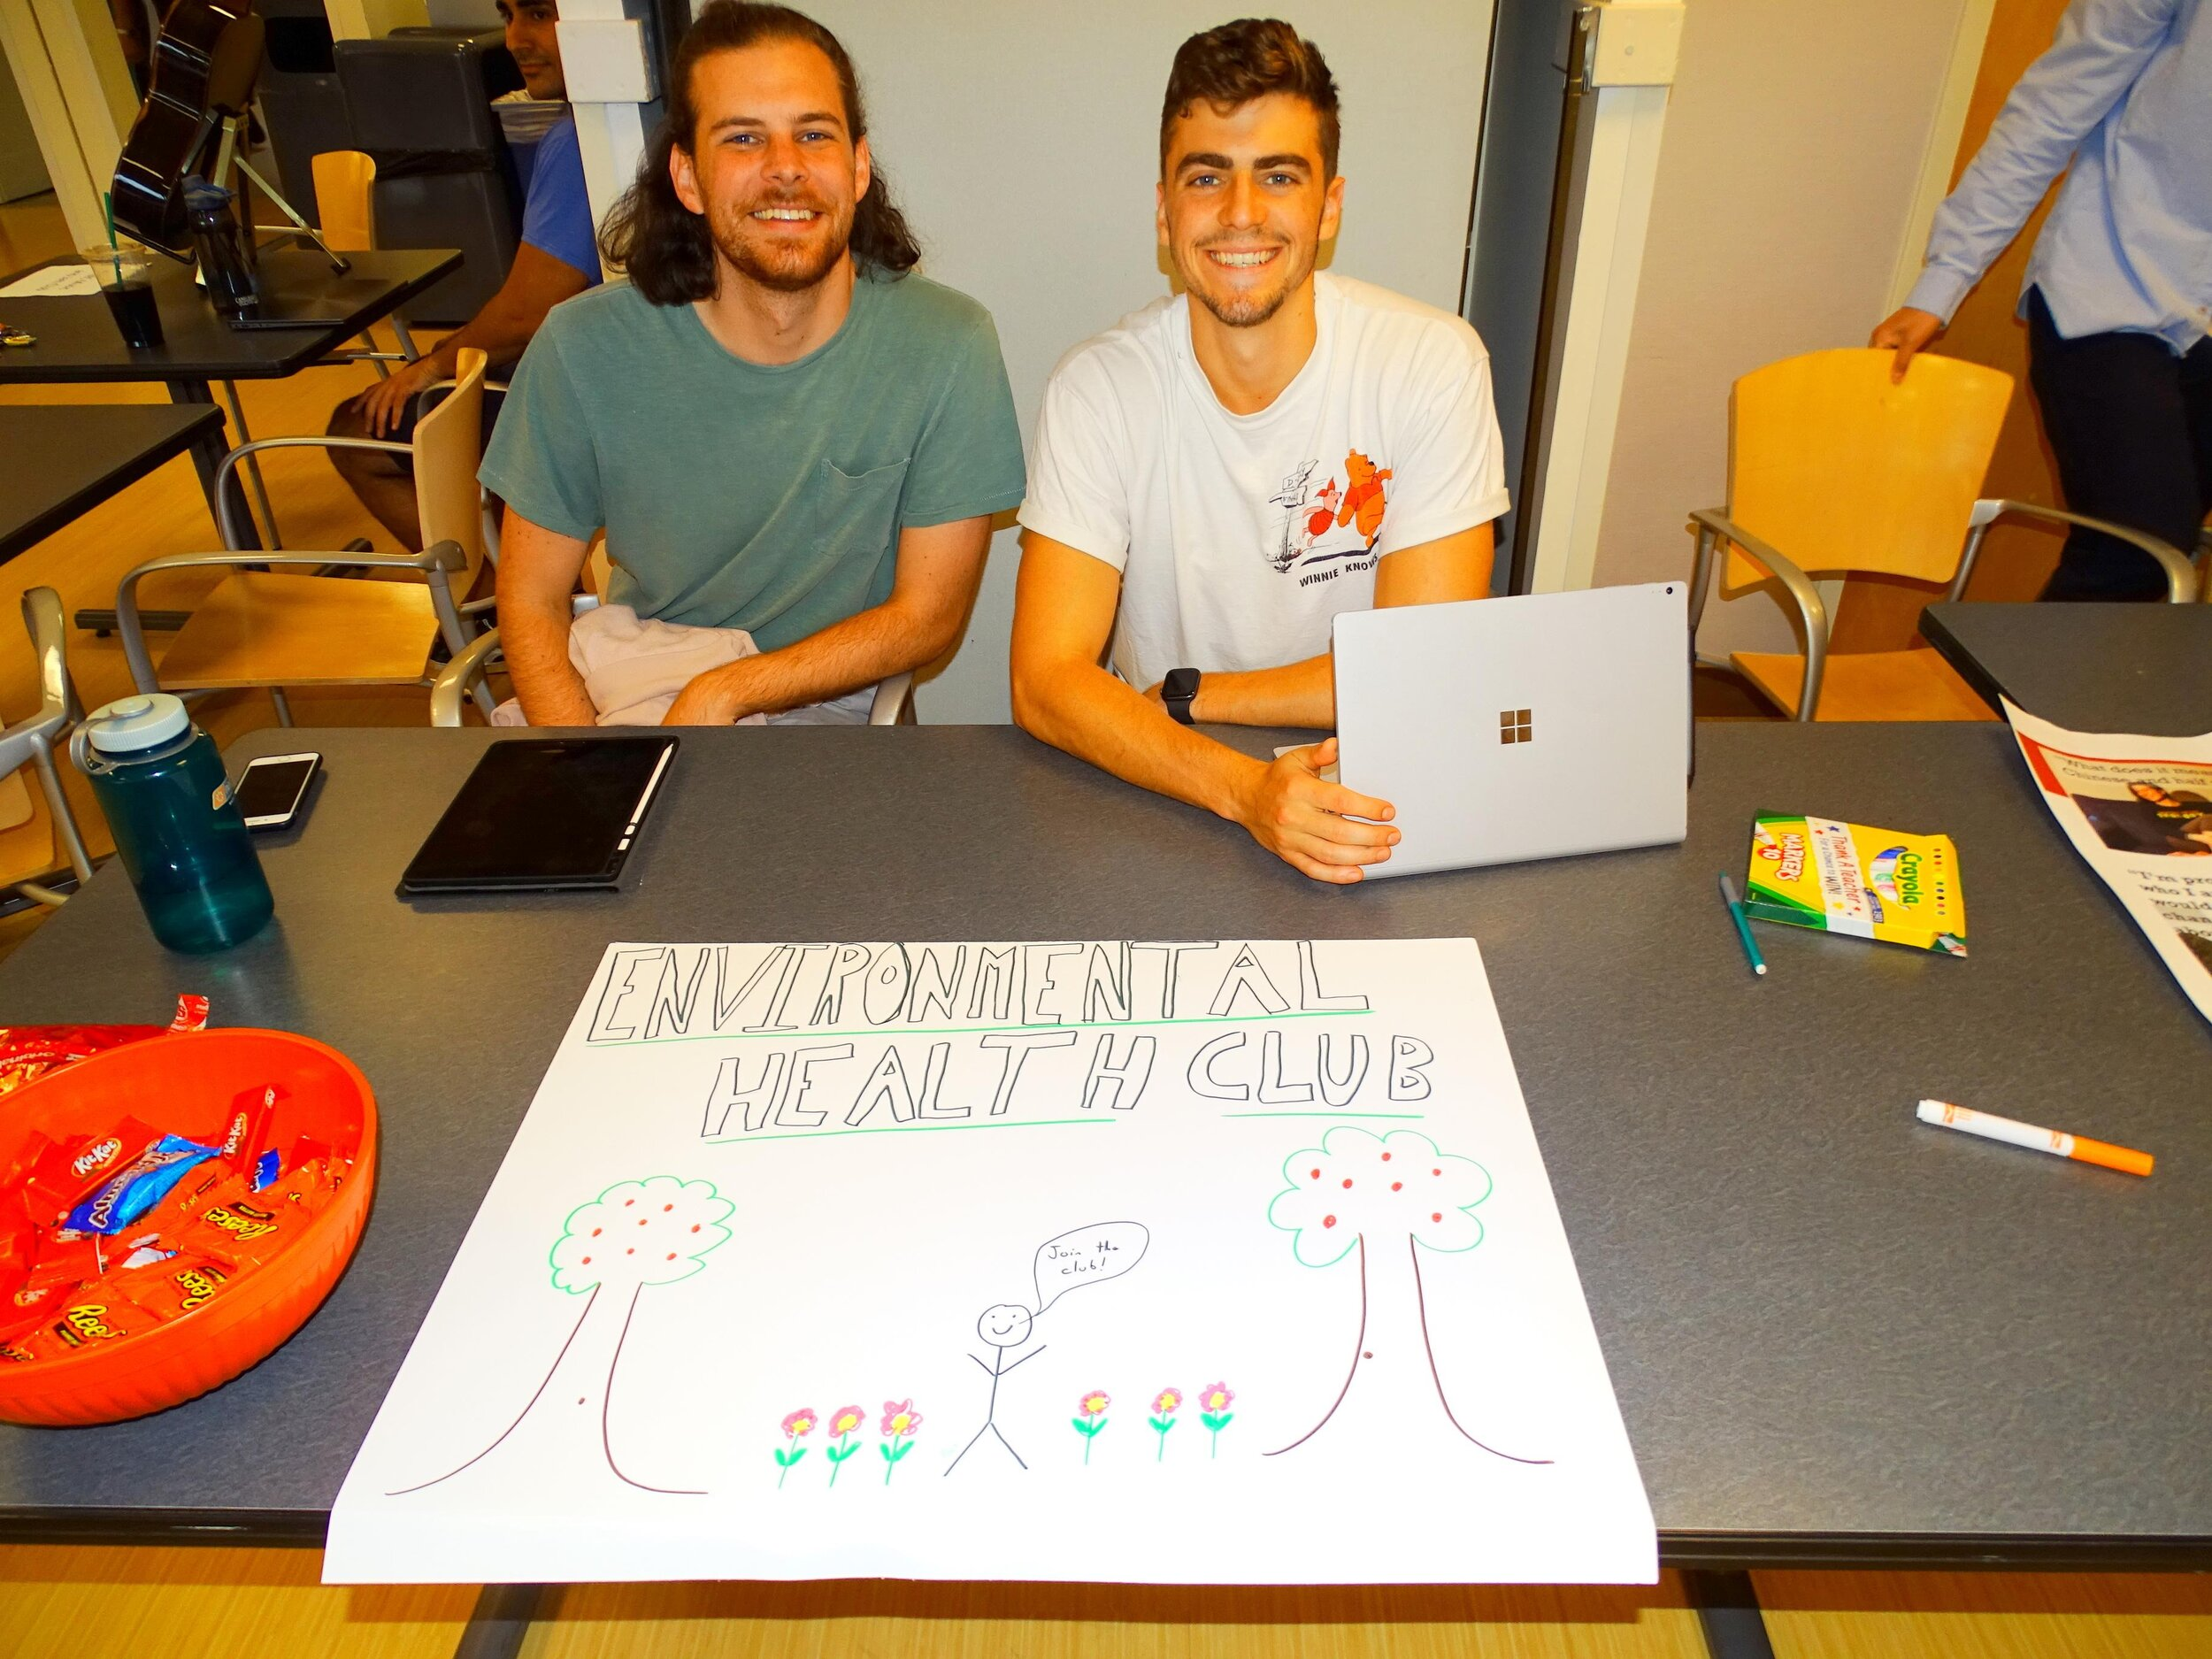 September 2019 - NYMC second year medical students, Conor Murphy and Samuel DeSantis, established the first Environmental Health Student Club on campus. The faculty of CEHCHV will provide ongoing mentorship and oversight of the club to help the students maximize their academic and service potential in Environmental Health in our community.